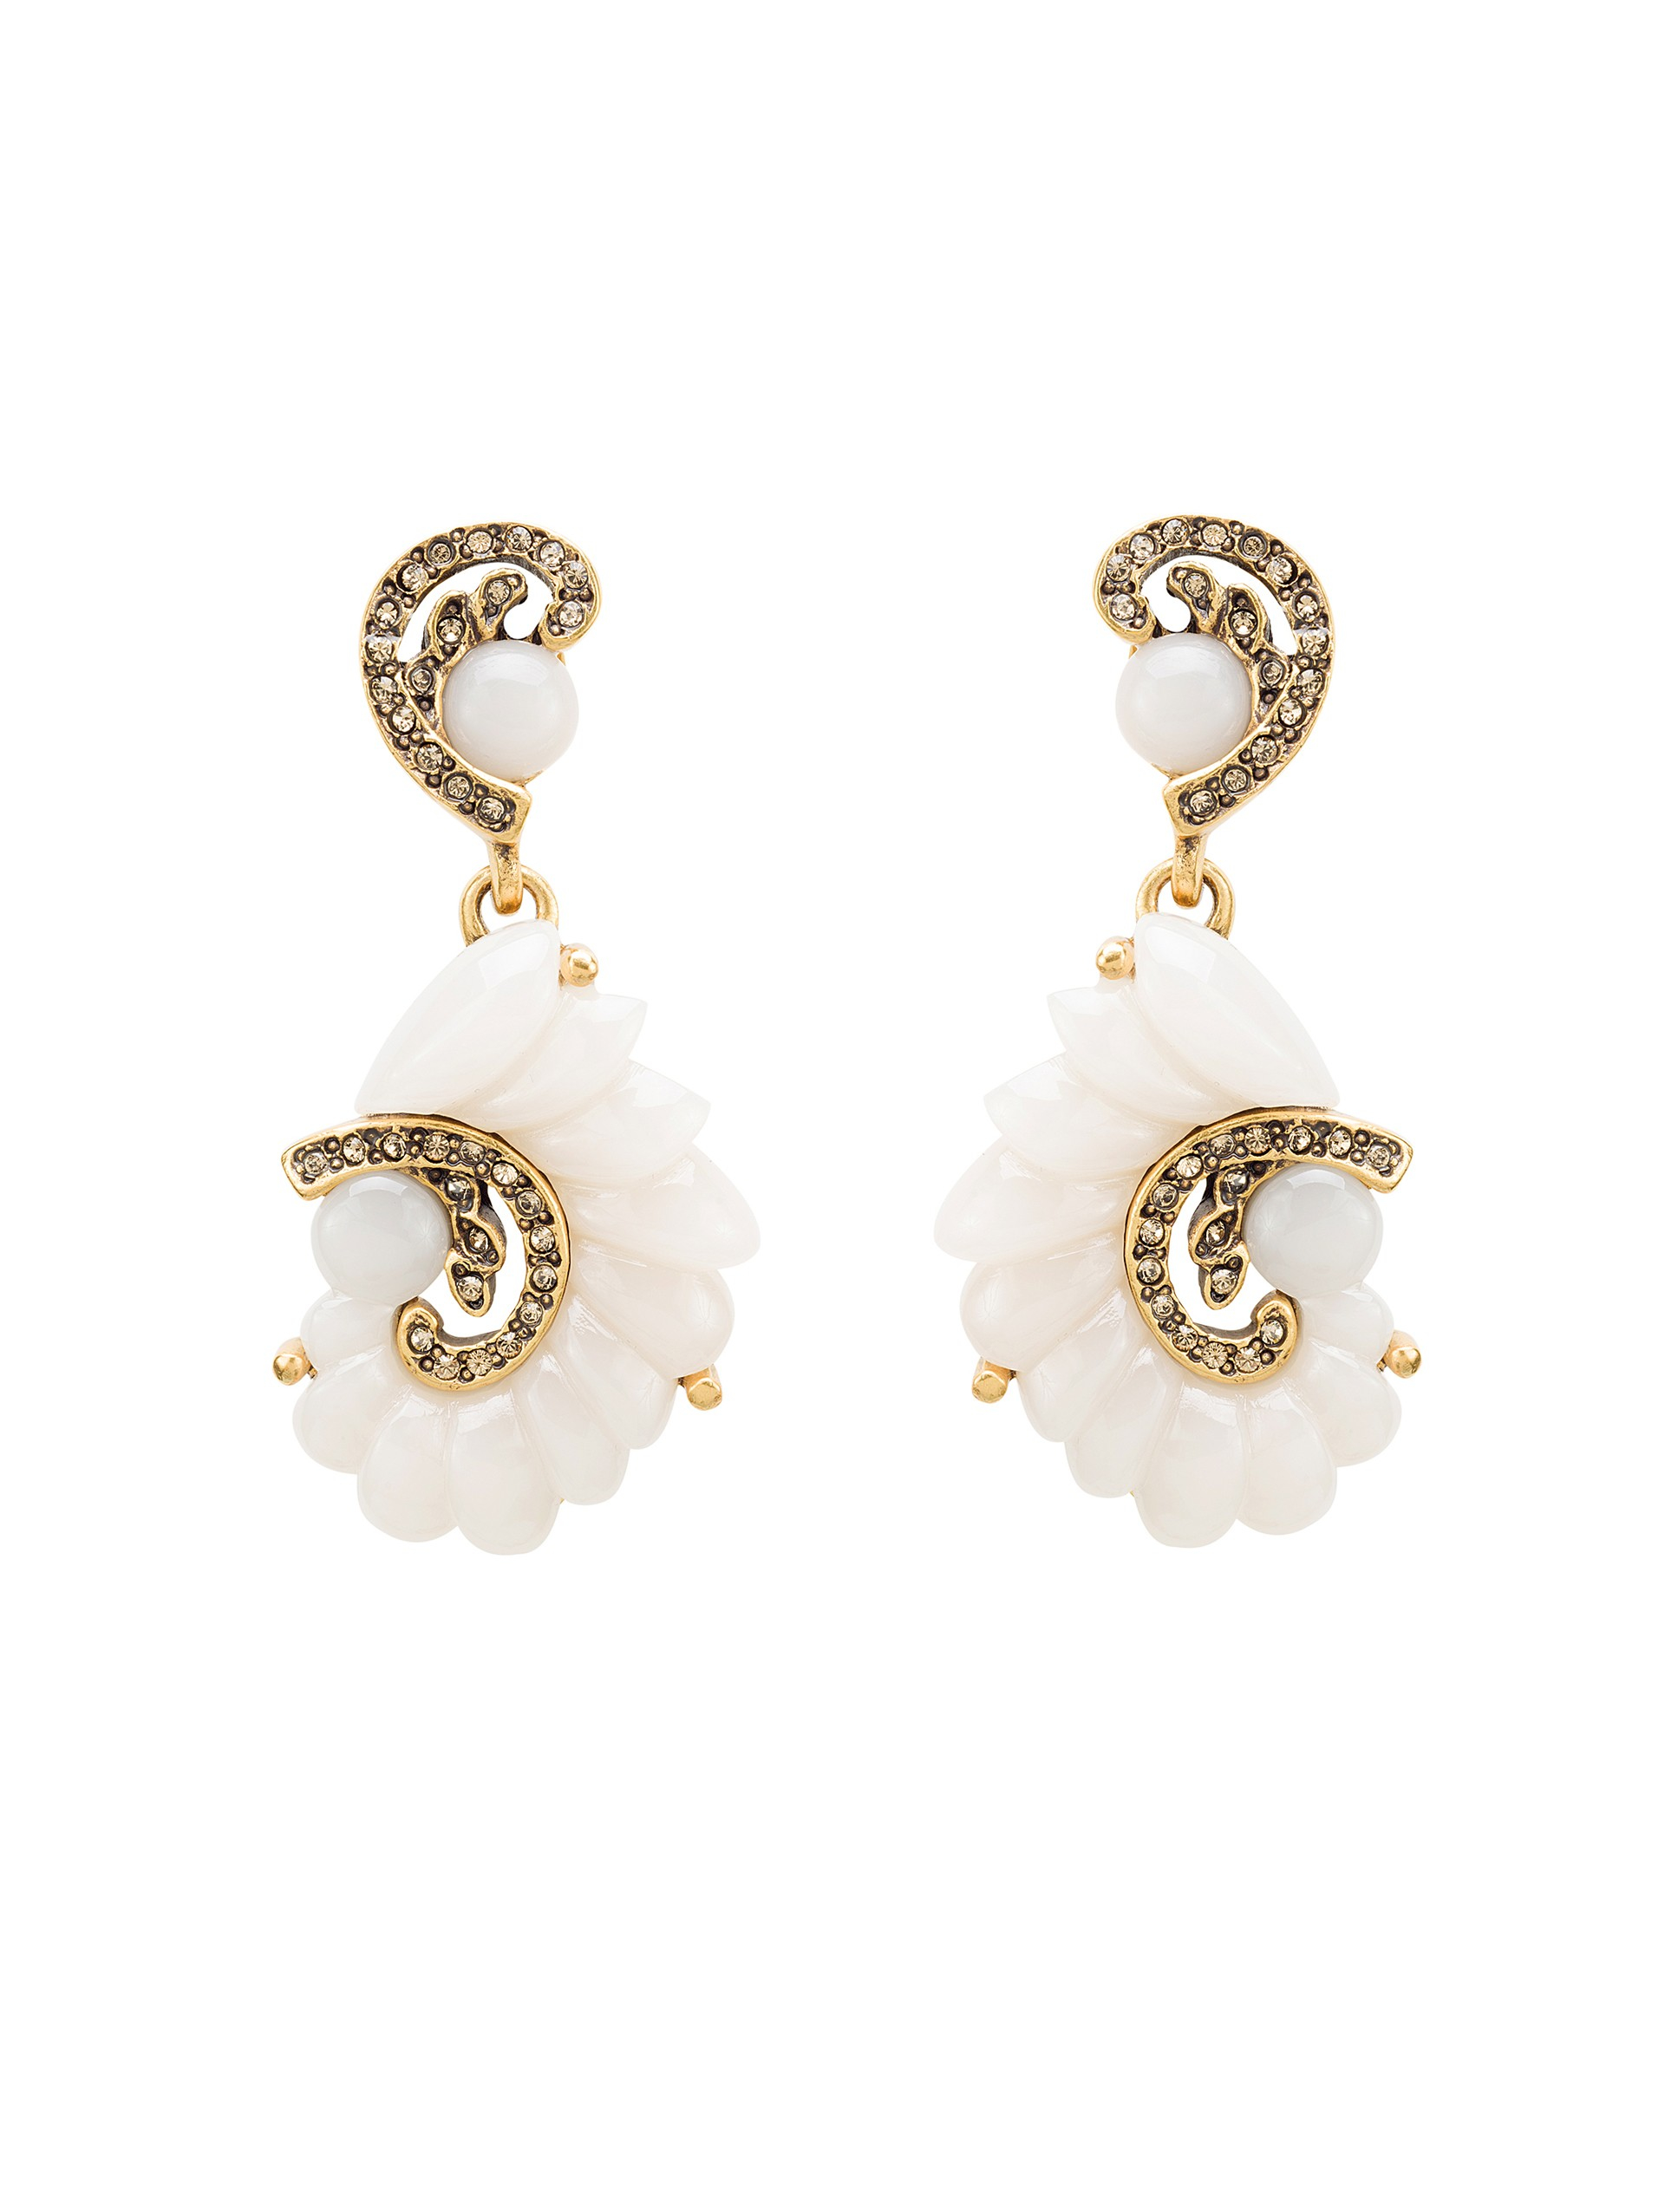 6a3ff8be02bd1 Lyst - Oscar de la Renta Resin Swirl Scalloped Earrings in Metallic